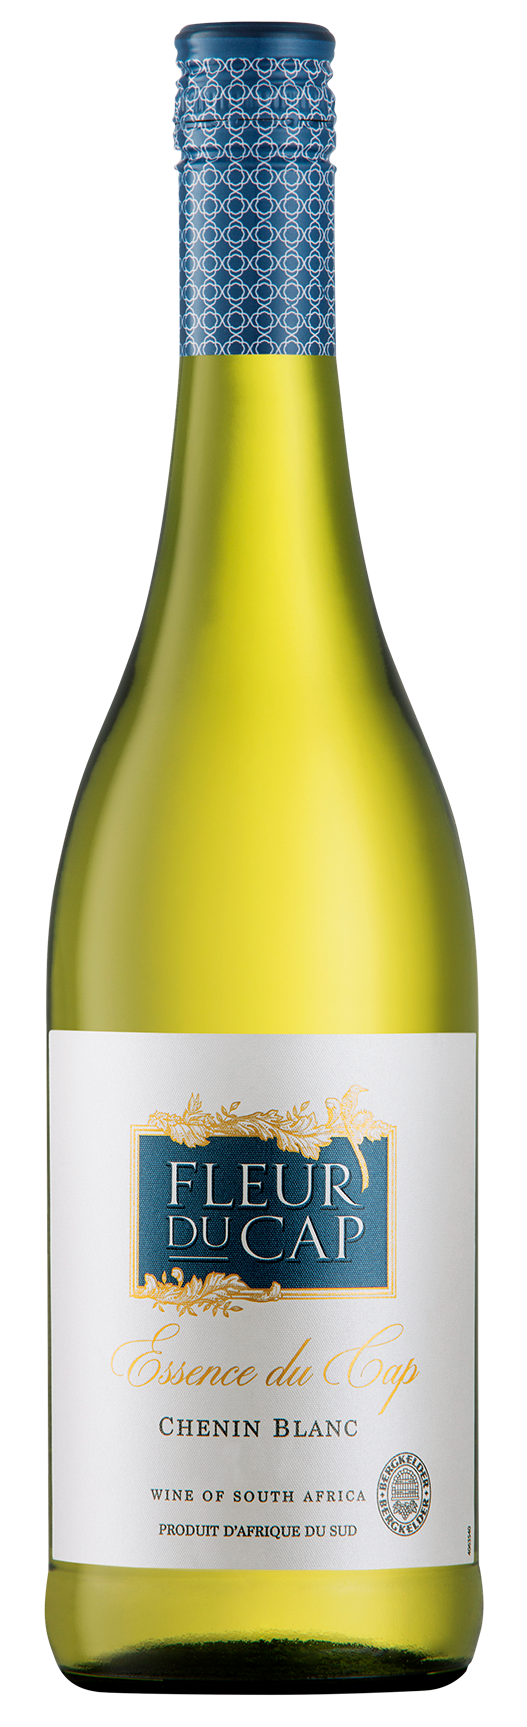 The Essence du Cap range Essence du Cap Chenin Blanc